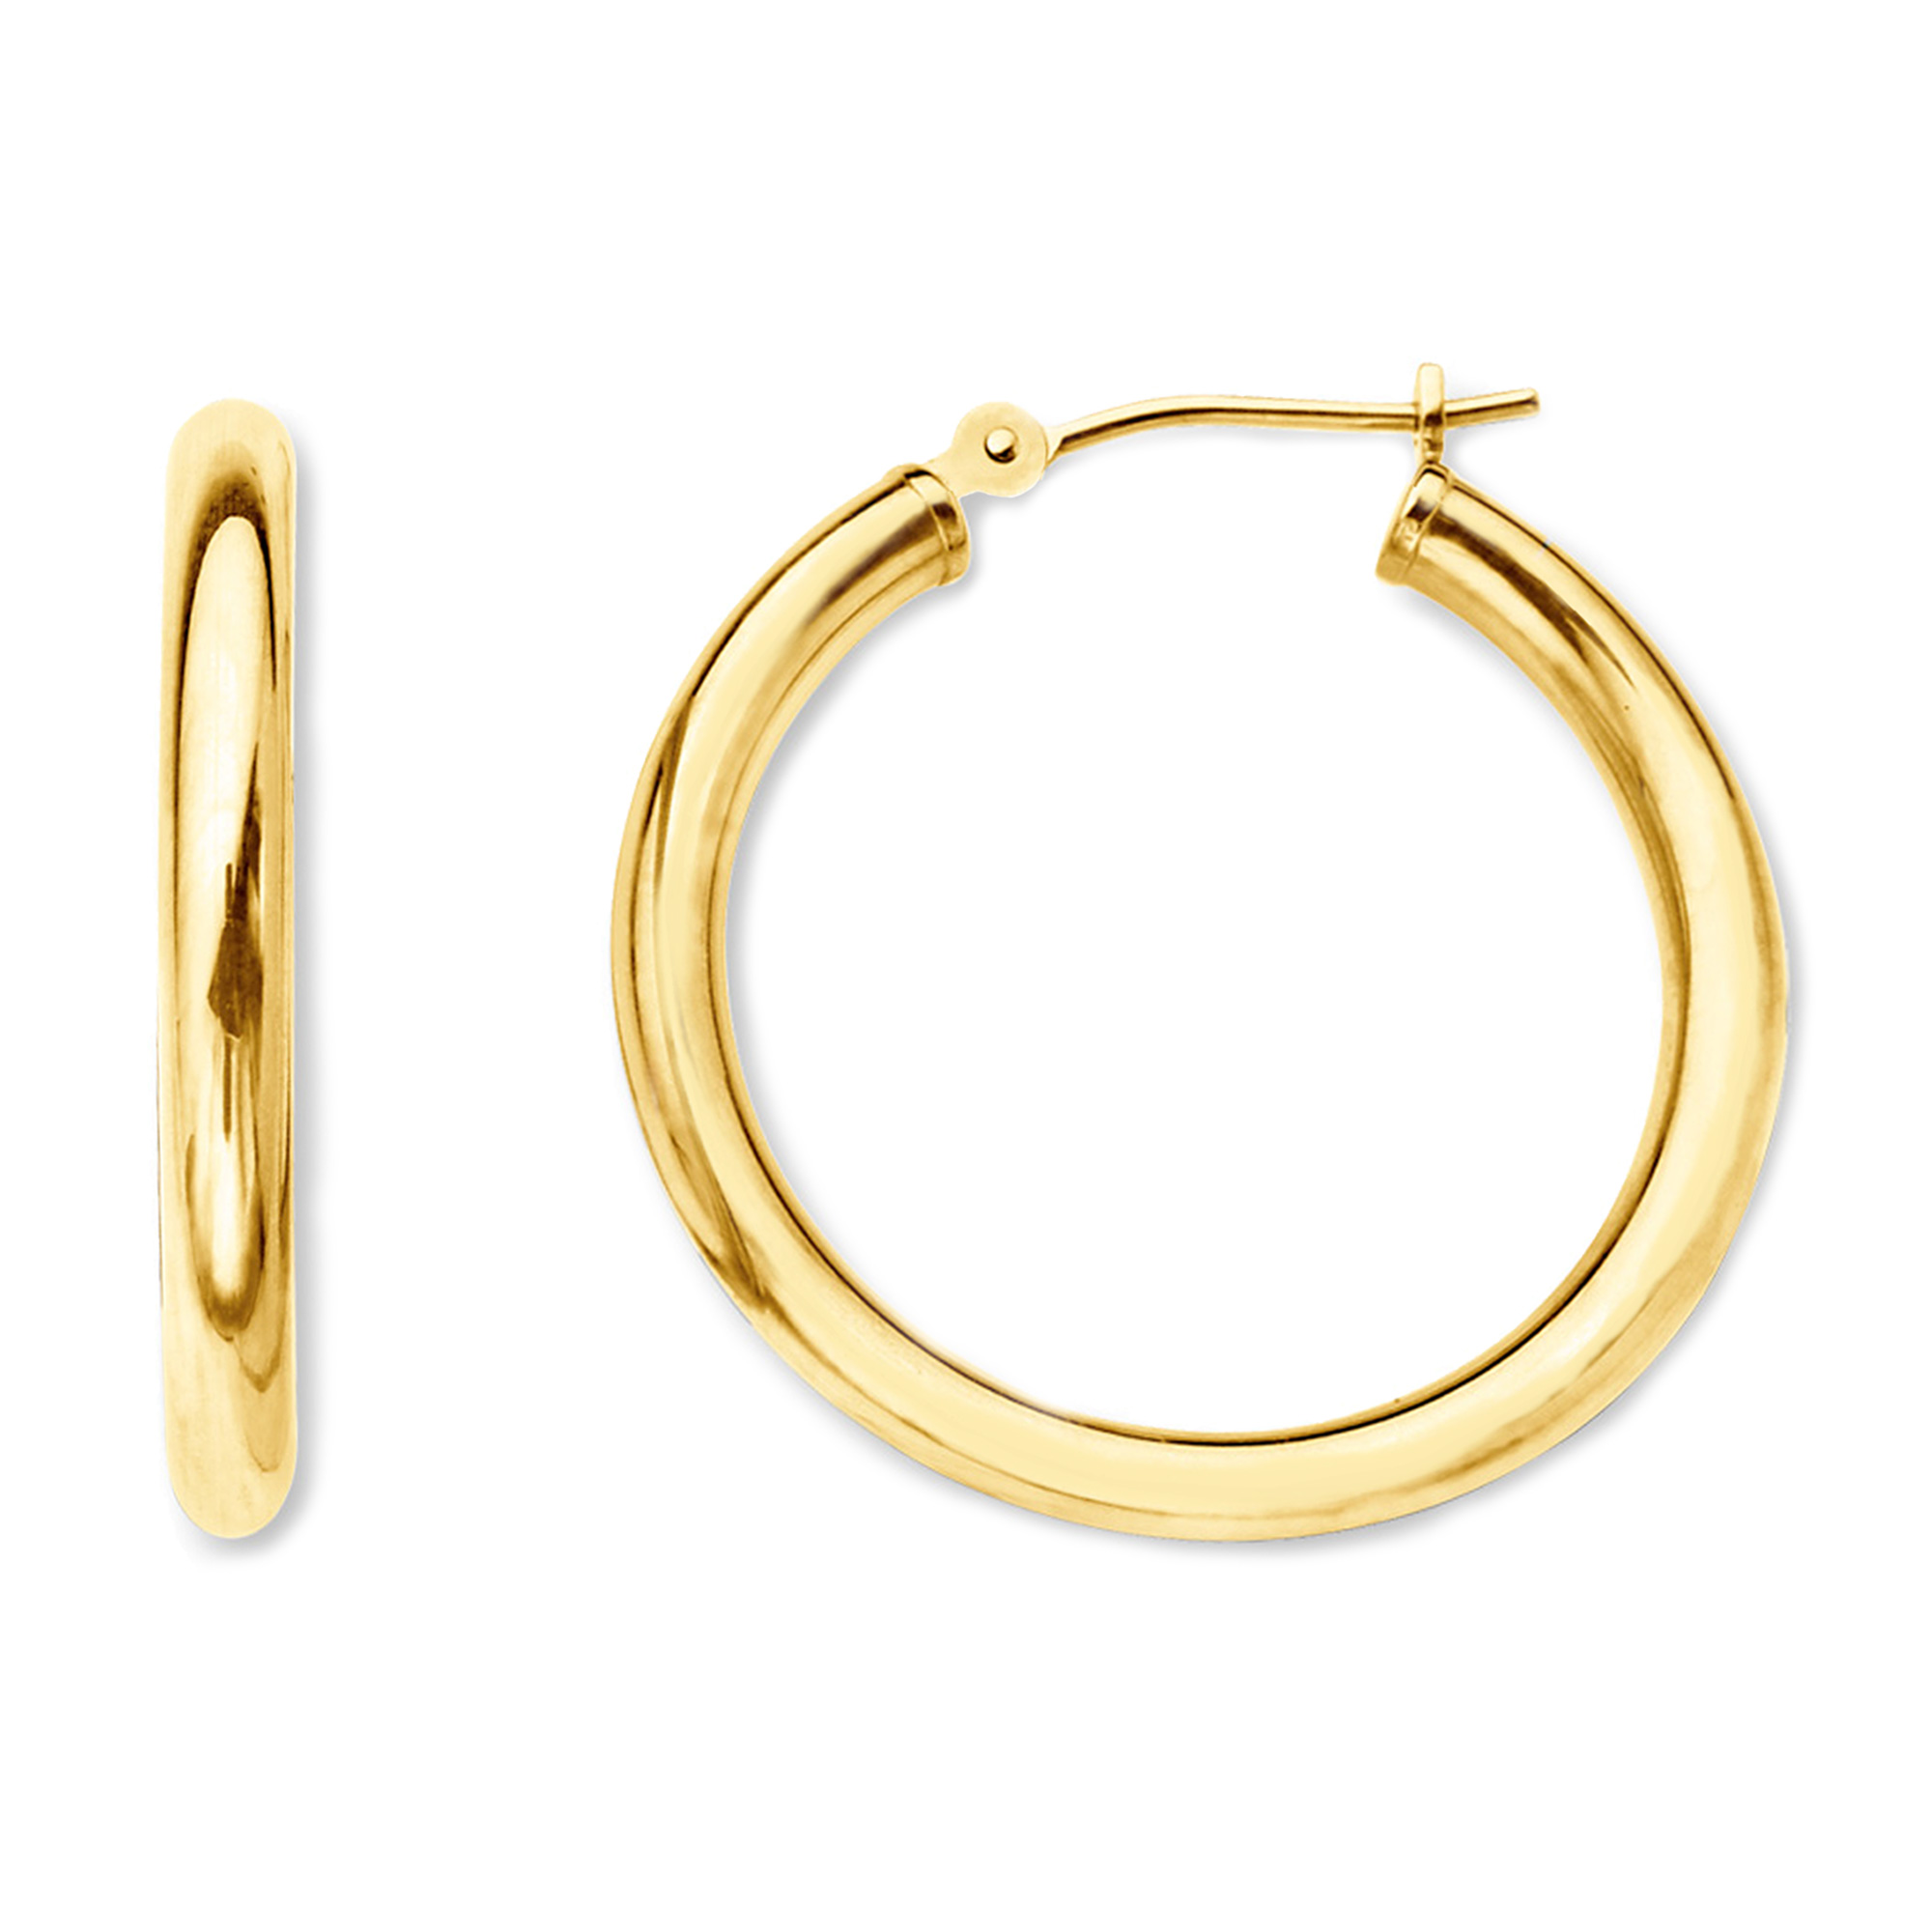 10k Yellow Gold 2mm Shiny Round Tube Hoop Earrings, Diameter 25mm Complete your jewelry collection with a gorgeous pair of 10k gold hoop earrings. Whether you prefer large bohemian look or tiny orbs, you'll discover plenty of sizes to match your style. These earrings have a secure snap post clasp making them easy to wear and remove.